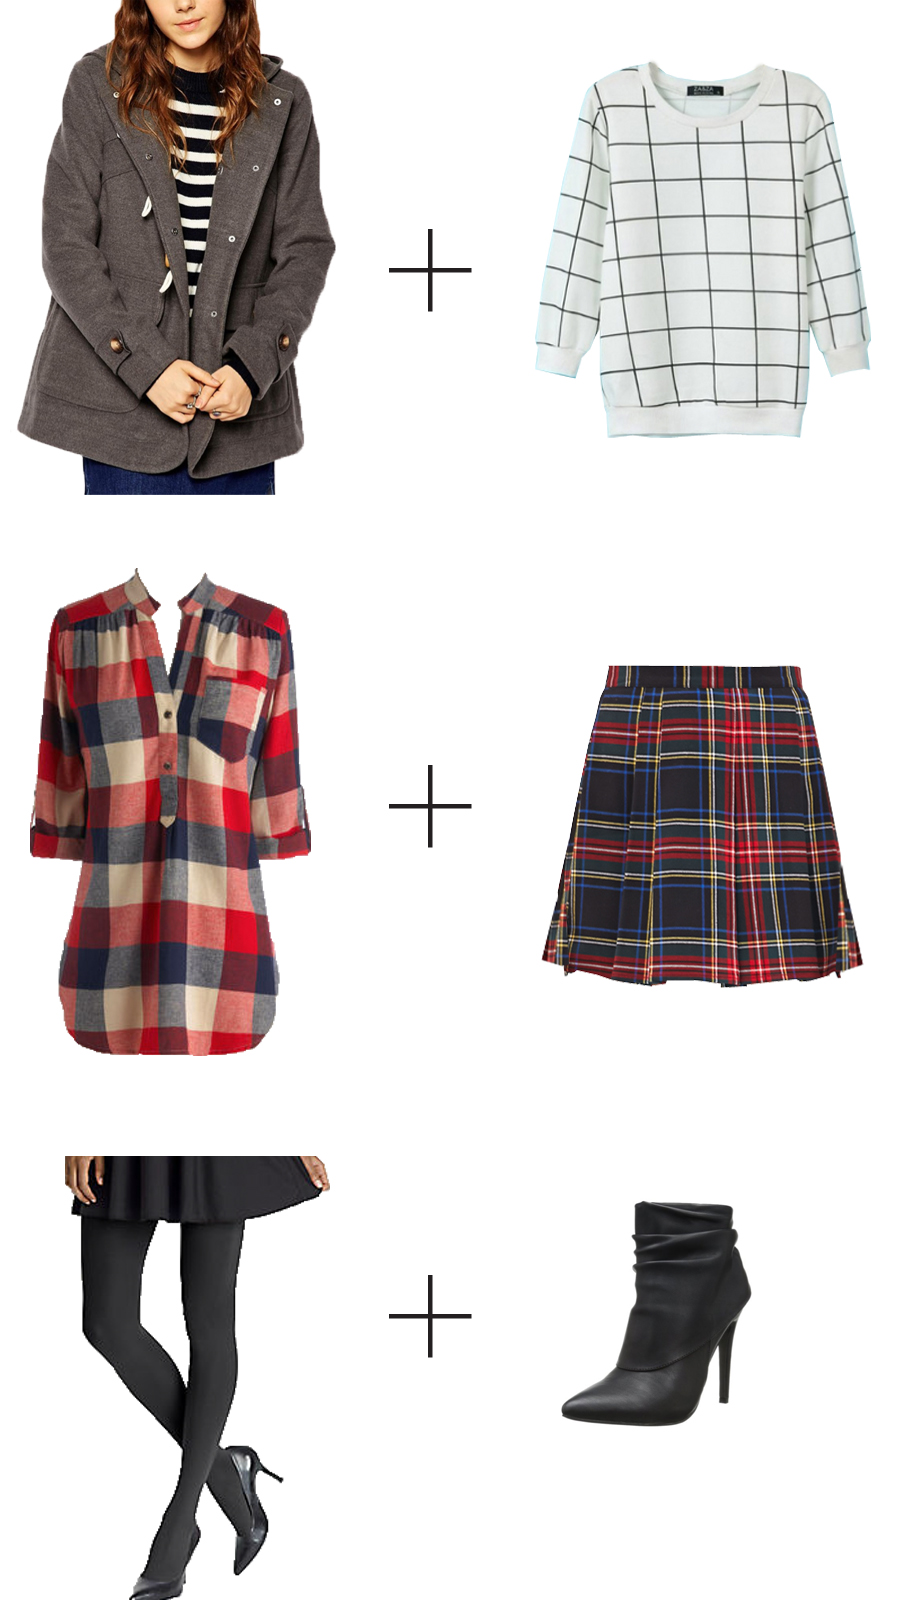 Plaid Pattern Pullover, $20.99 Jollychic.com .  Bonfire Stories Tunic, $39.99, ModCloth .  Plaid mini-skirt, $15.80  , Forever 21 .  Ultimate Hooded Duffle Coat, $114.26, ASOS.com .  Opaque tights, $12, Hanes .    Meo Boots  , $60, M  ichael Antonio .